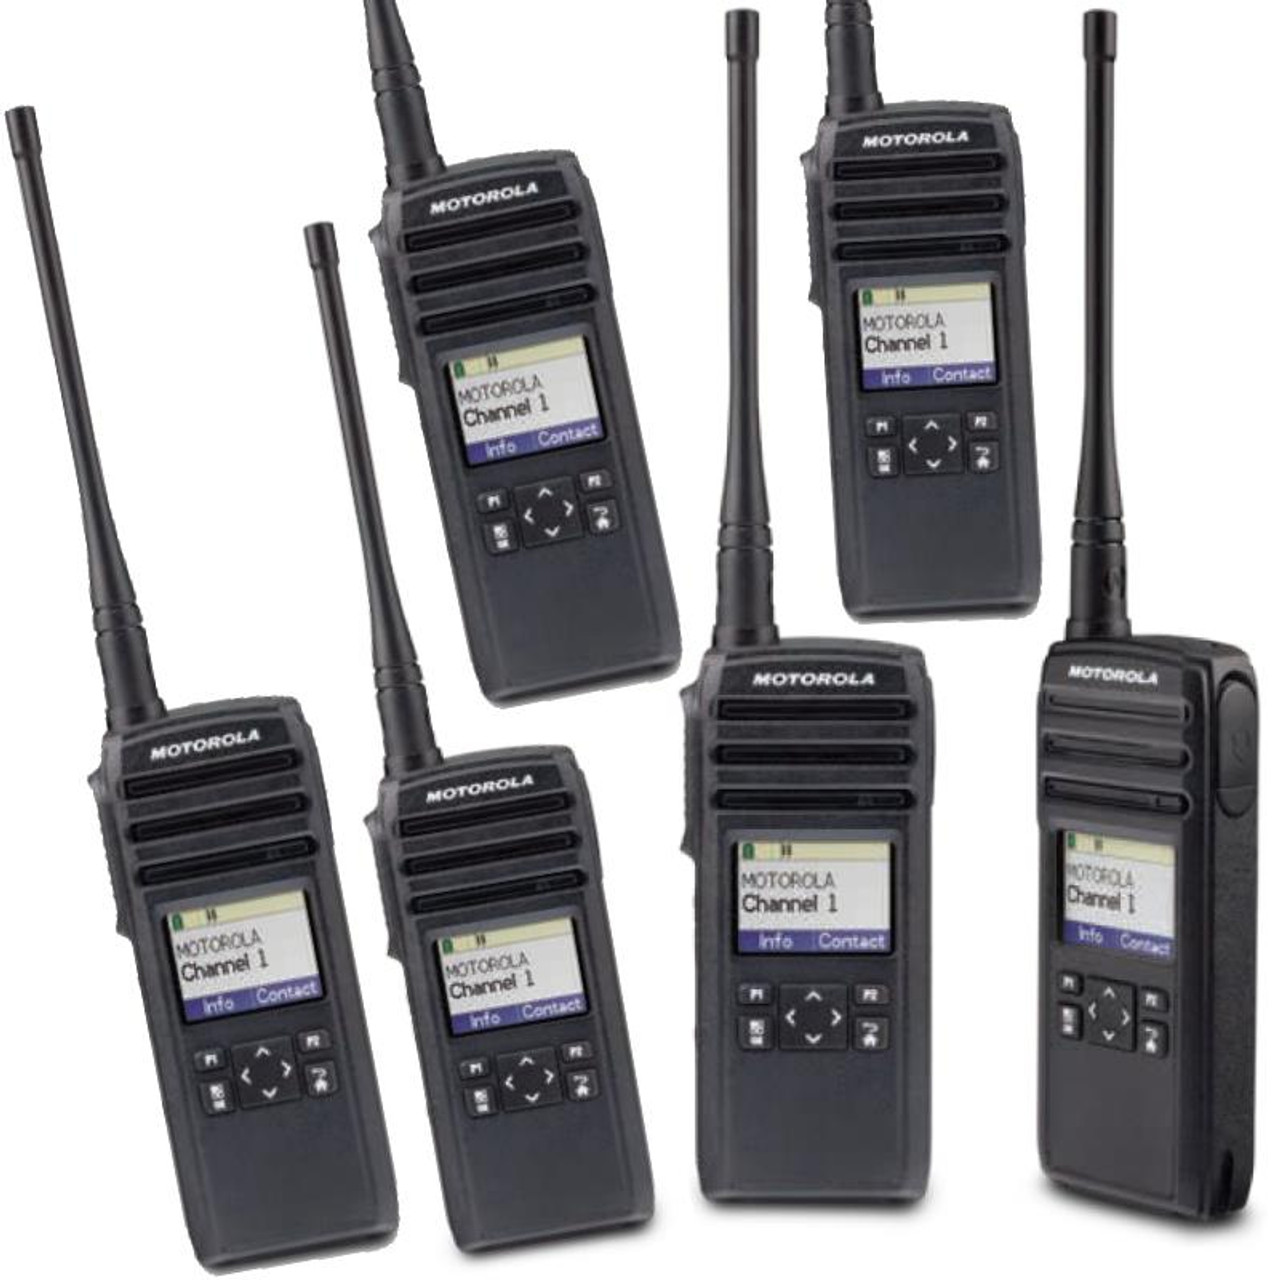 8f924f44e Six pack of LICENSE FREE Motorola DTR600 Digital Two Way Radios for your  business has Vibra Call and Texting features